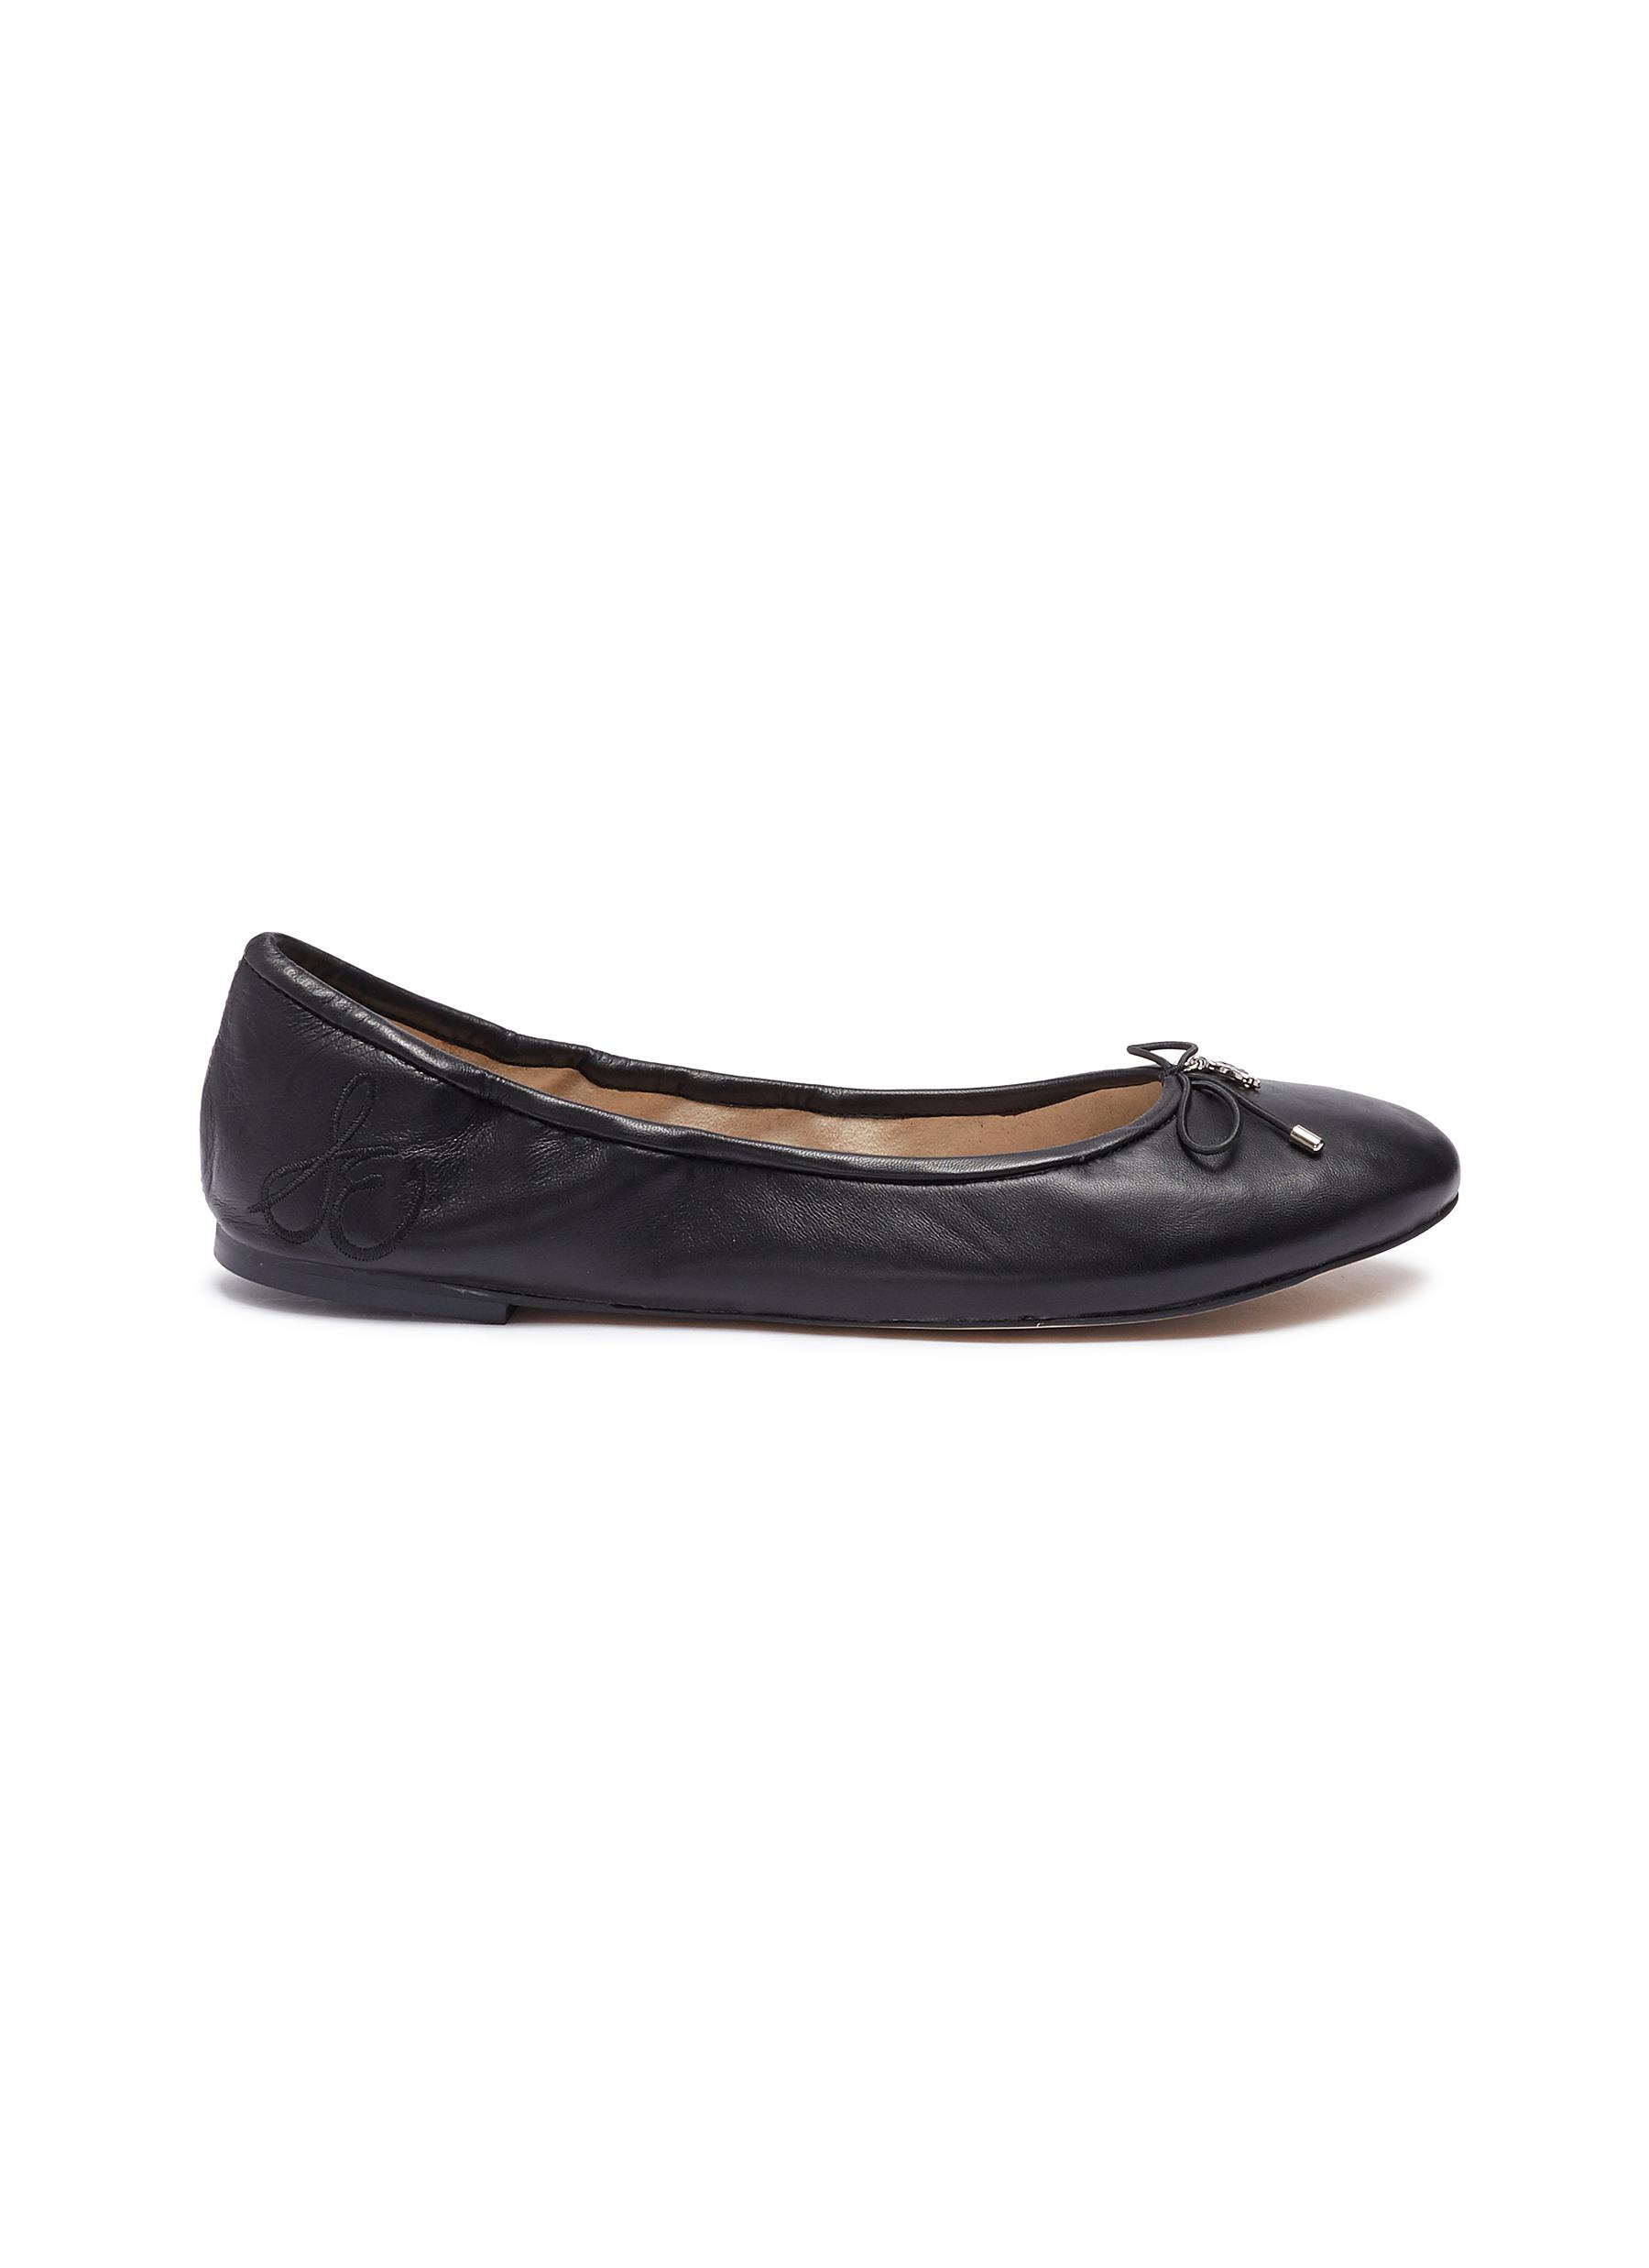 Felicia leather ballet flats by Sam Edelman